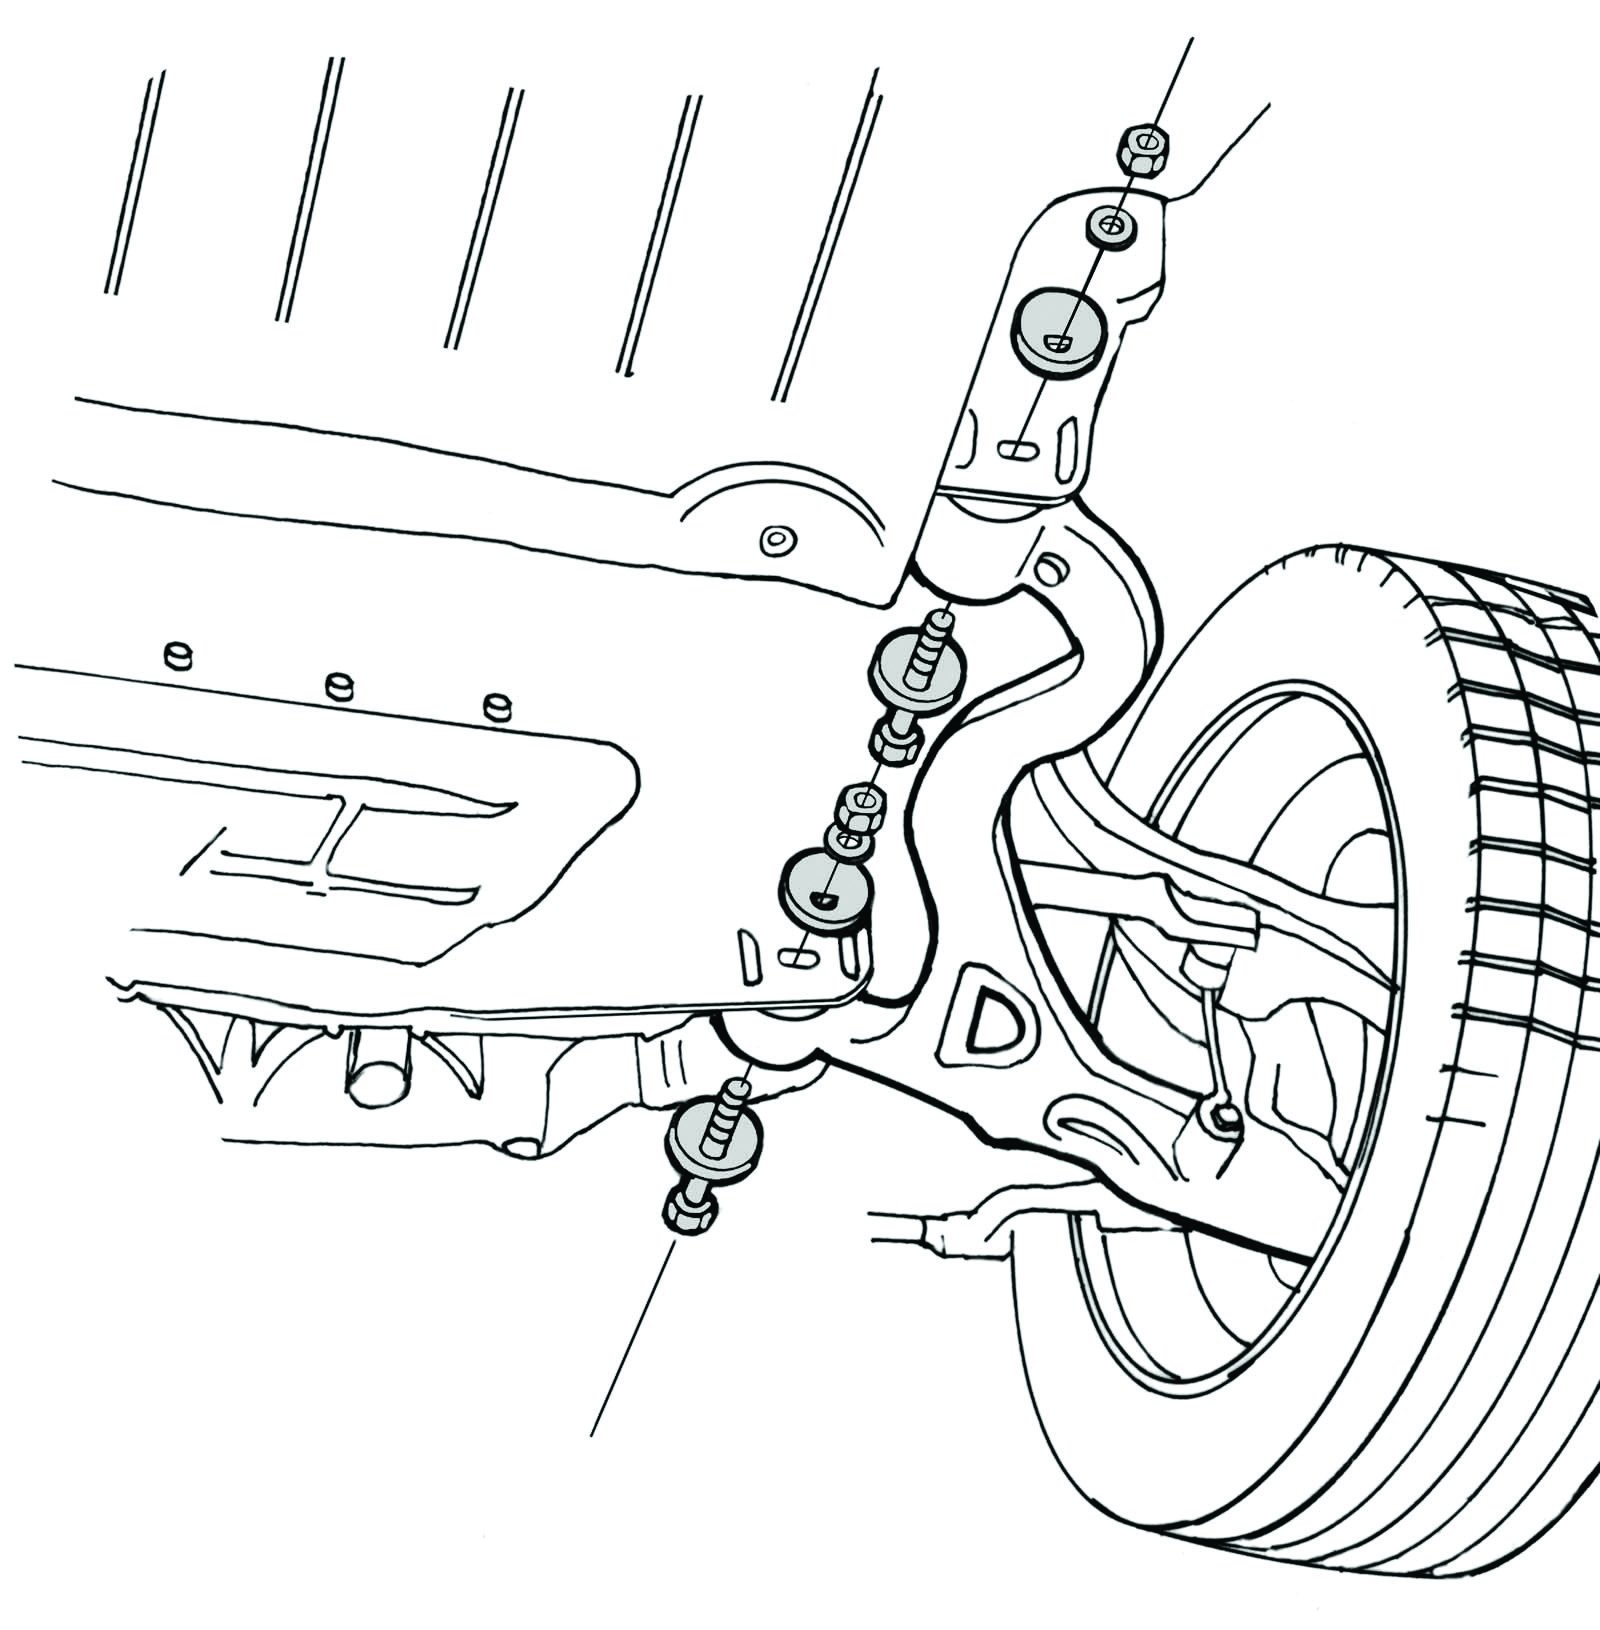 Service Manual How To Align Caster On A Jaguar Xf